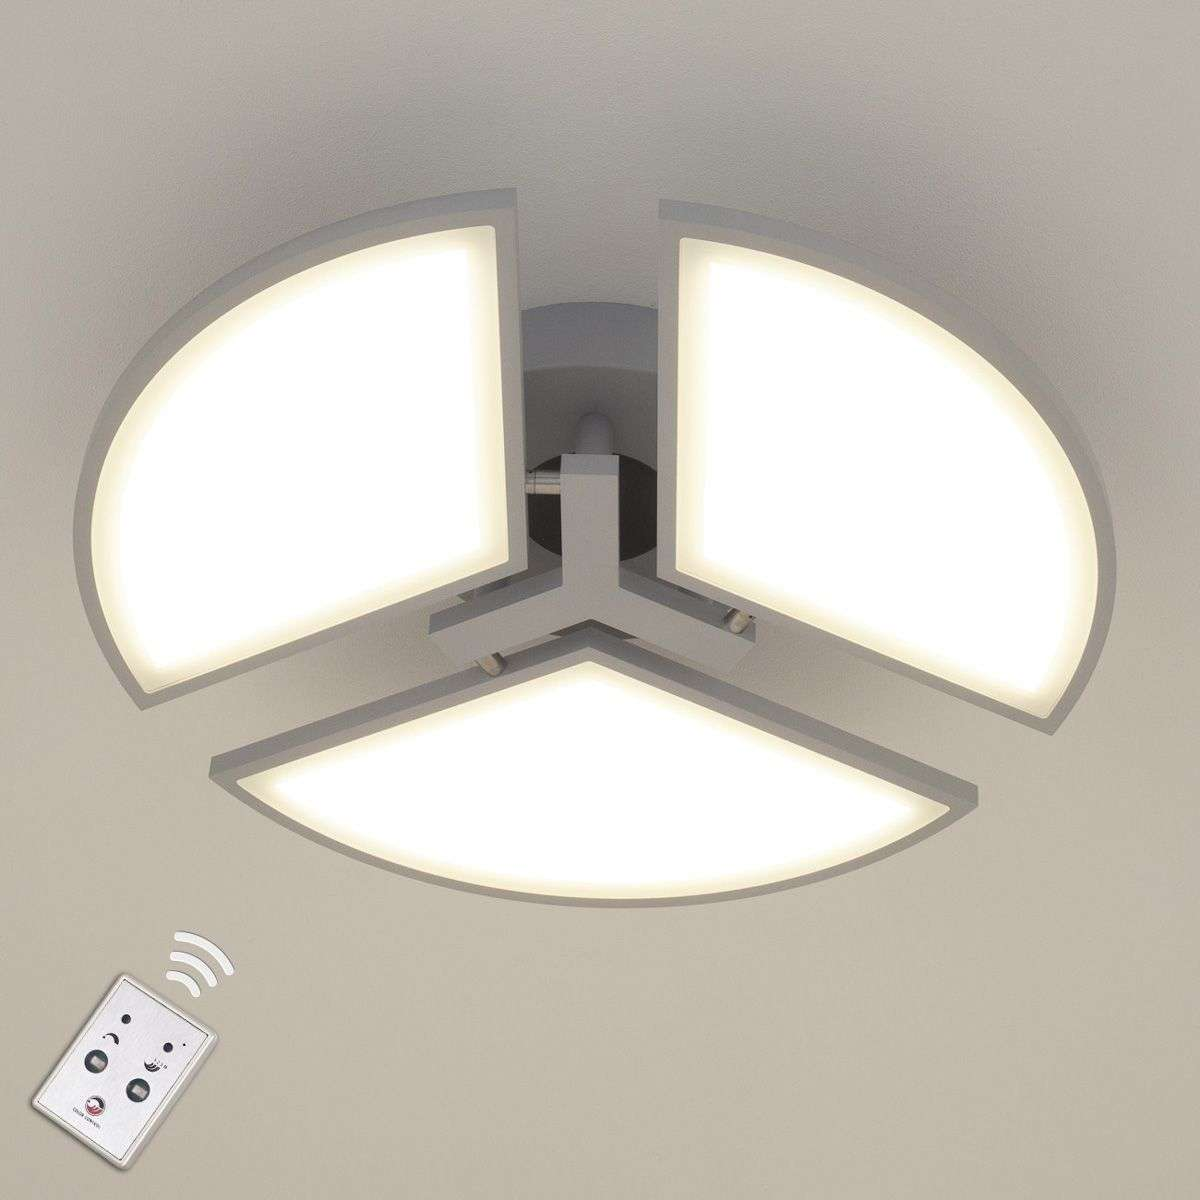 Aurela Innovative Led Ceiling Light 3056002 31